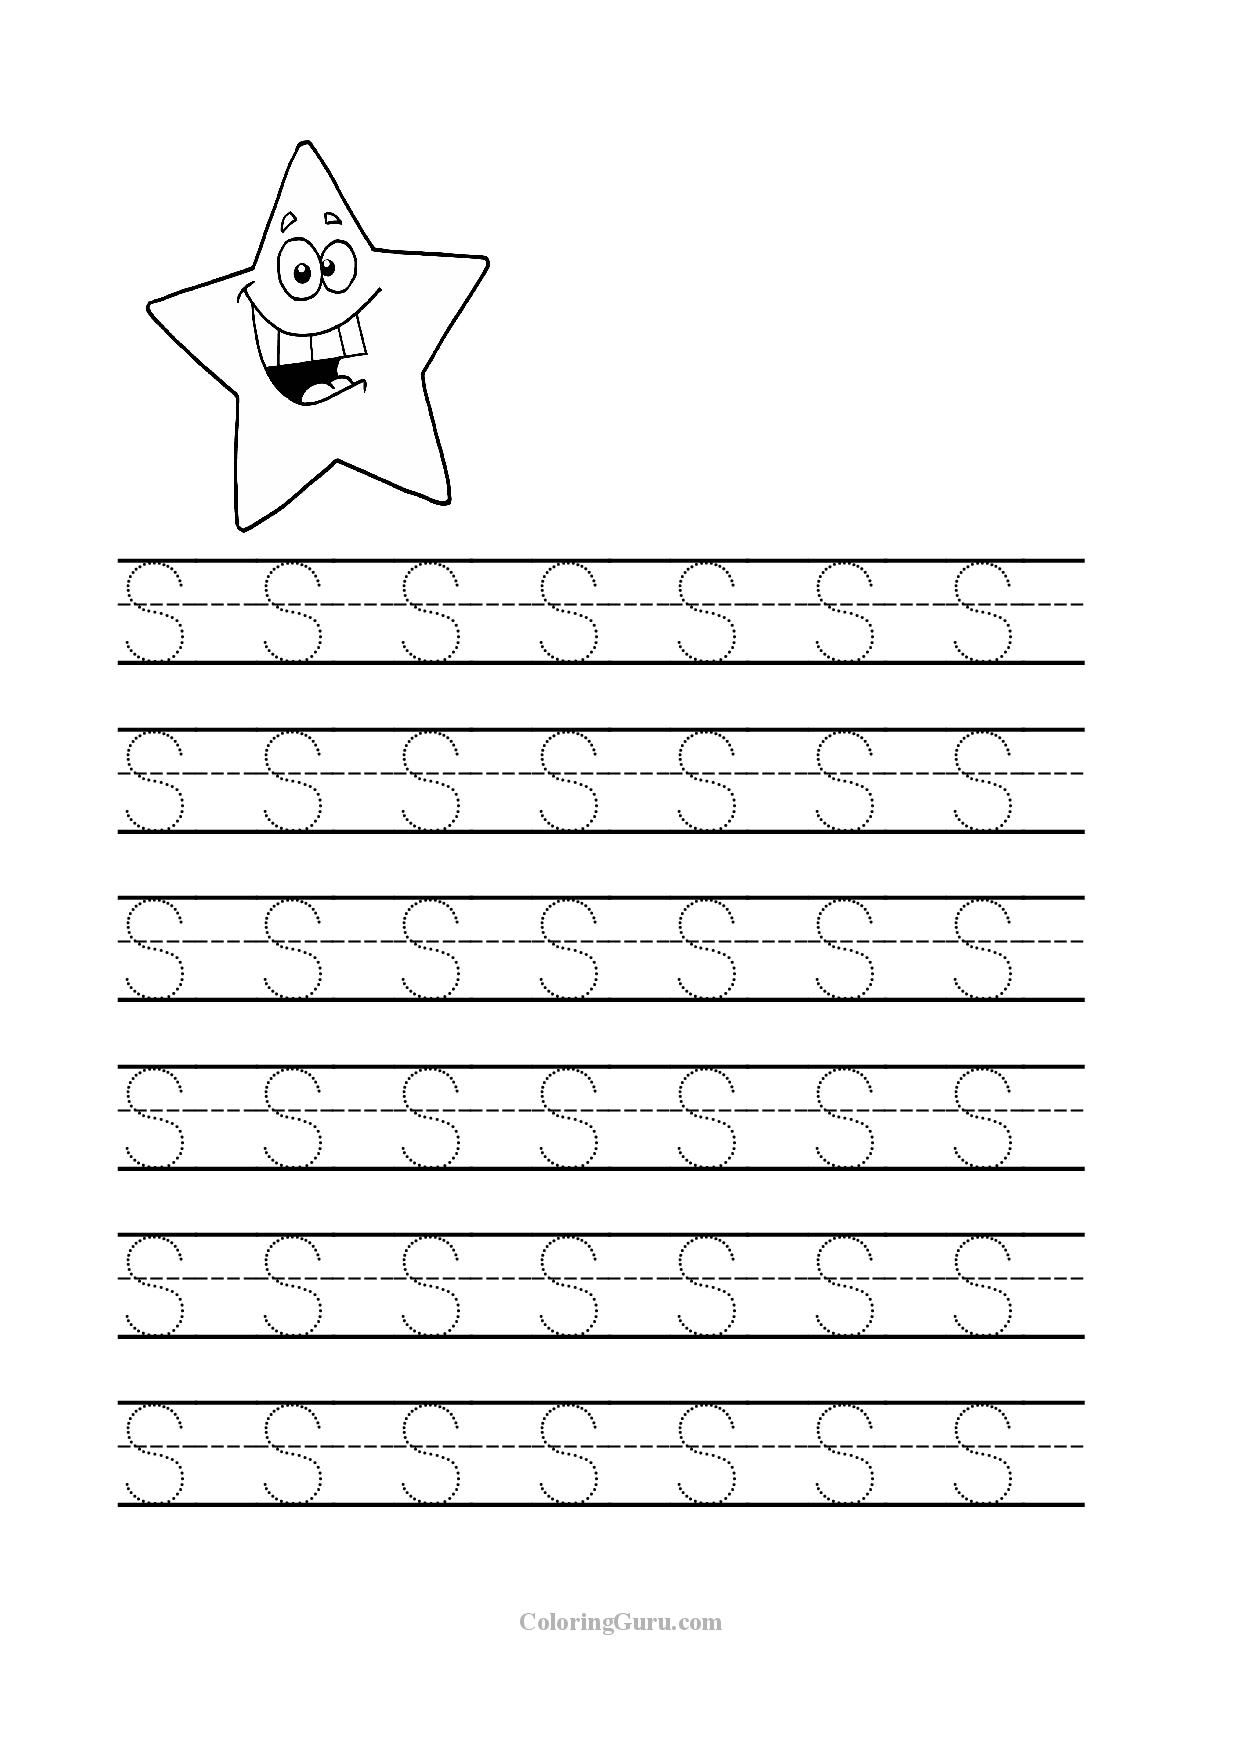 Free Printable Tracing Letter S Worksheets For Preschool within Preschool Tracing Worksheets Letters